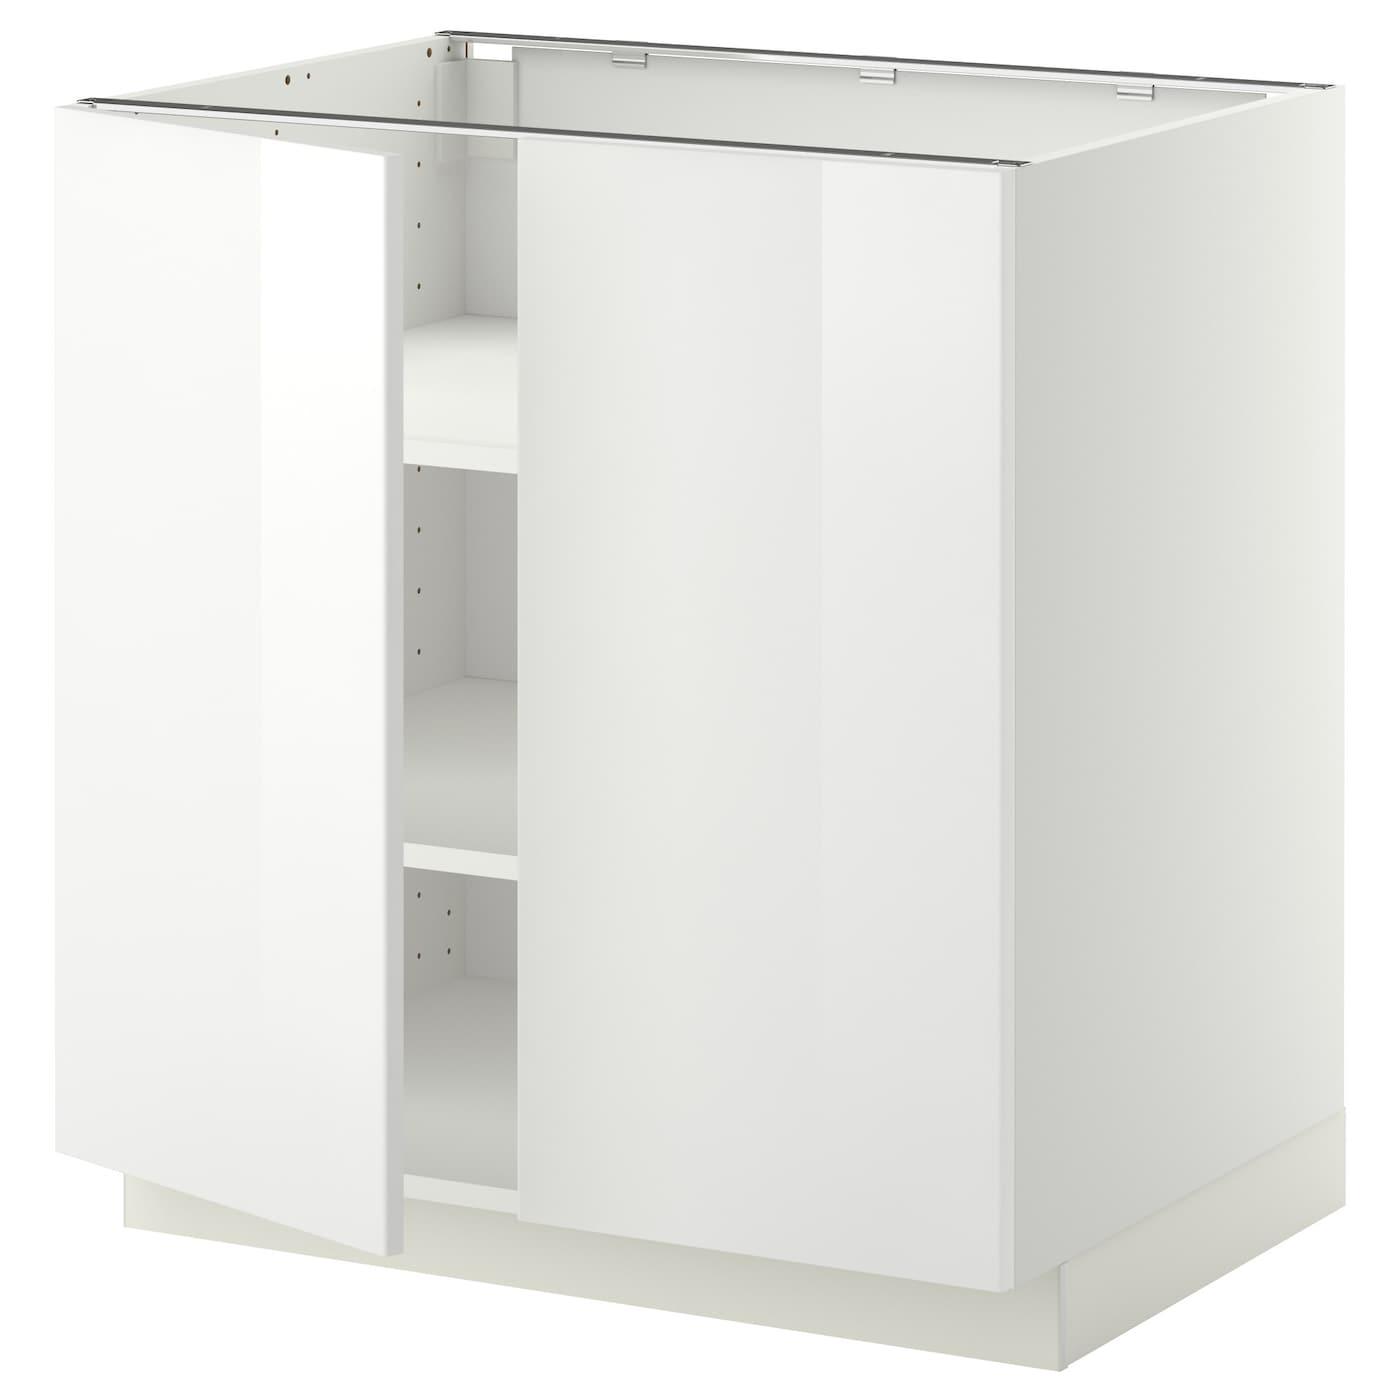 Metod Base Cabinet With Shelves 2 Doors White Ringhult